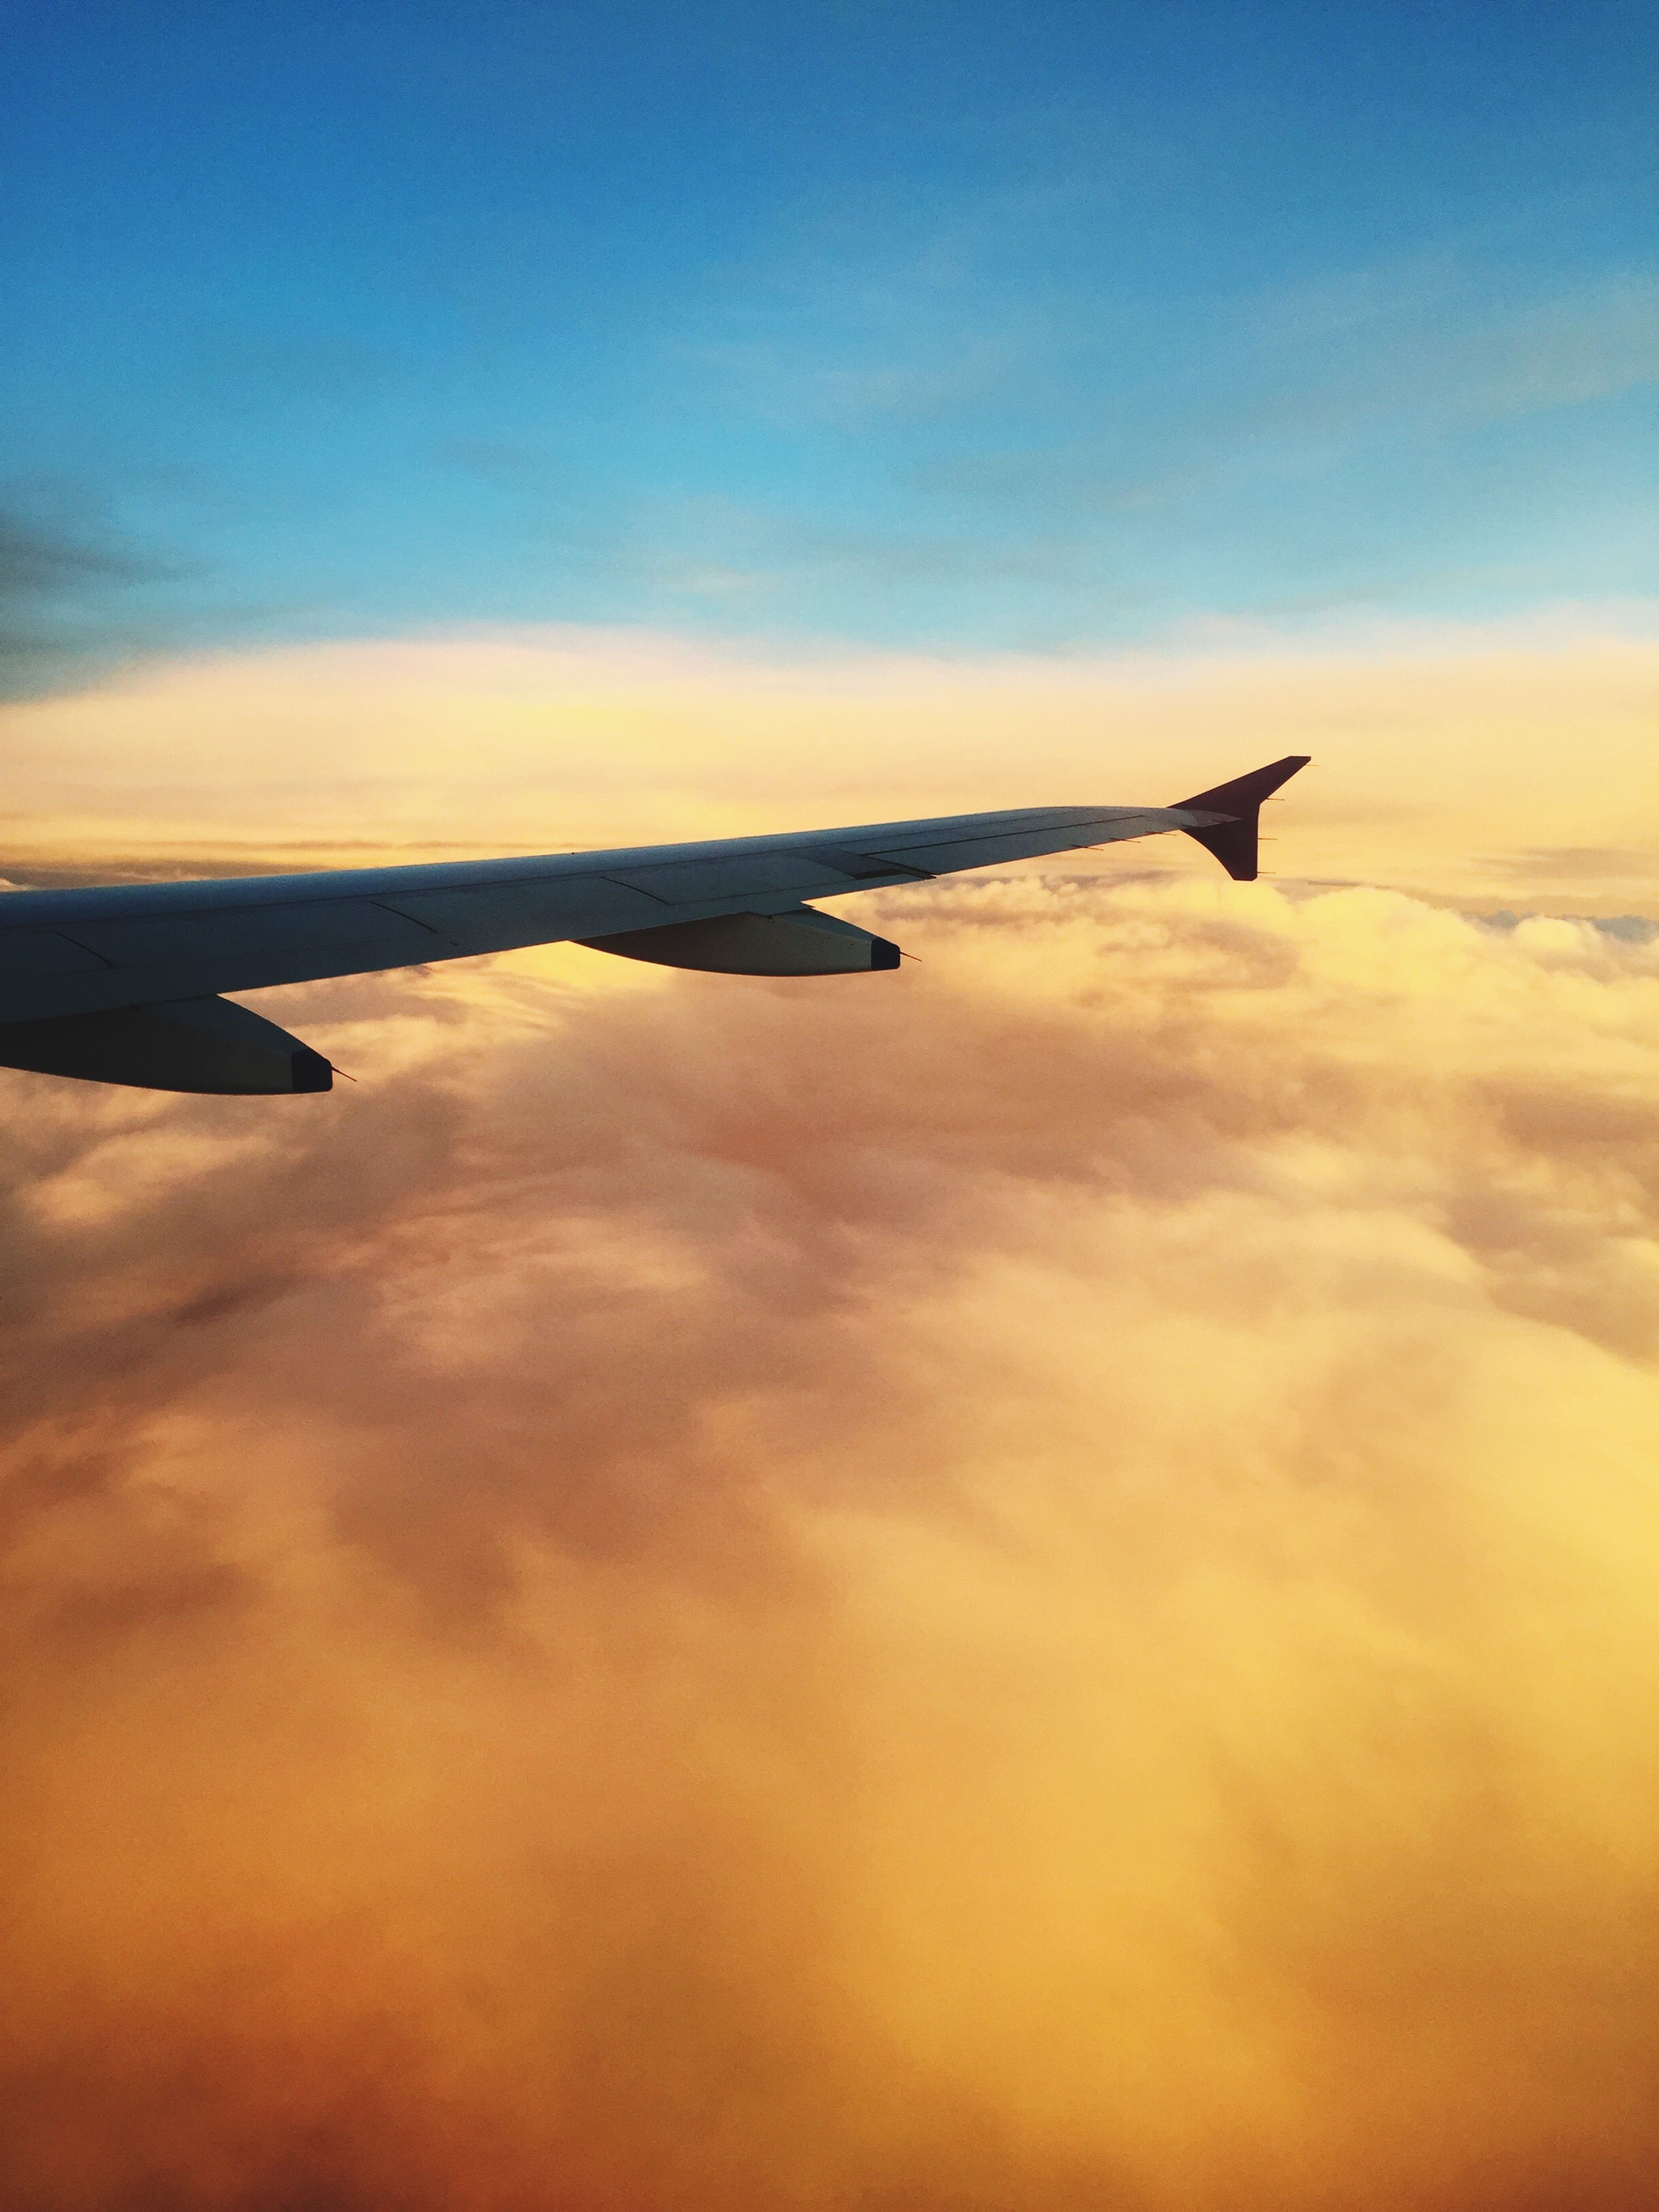 flying, sky, airplane, sunset, cloud - sky, scenics, transportation, beauty in nature, air vehicle, cloud, nature, mode of transport, aircraft wing, tranquil scene, mid-air, cloudscape, part of, tranquility, travel, cropped